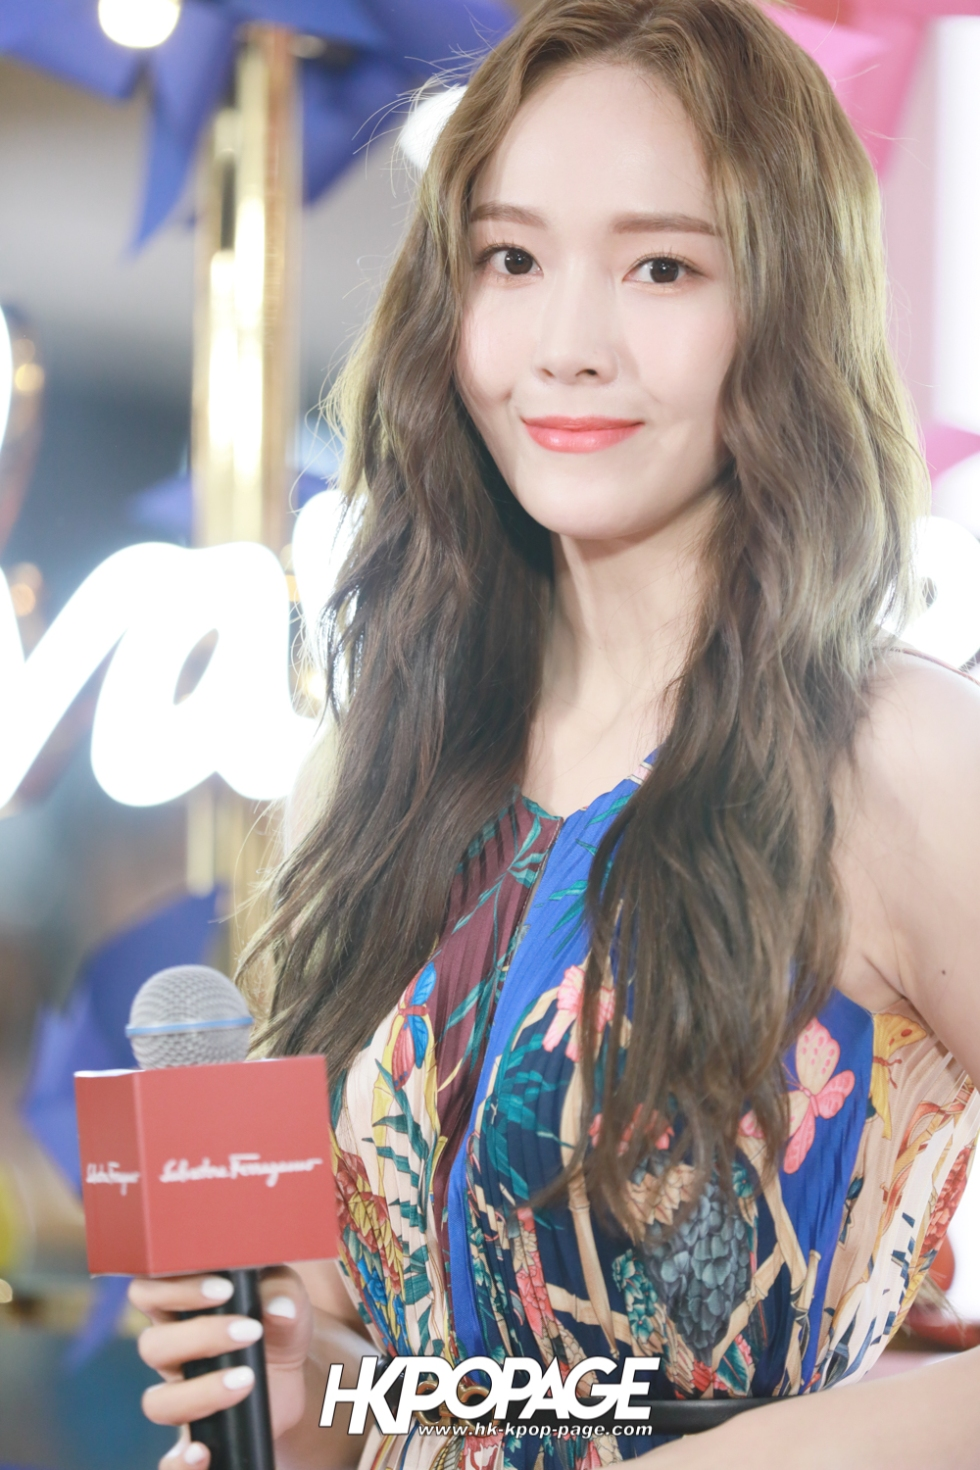 [HK.KPOP.PAGE] 181102_Jessica Jung_Salvatore Ferragamo Event in Hong Kong_01